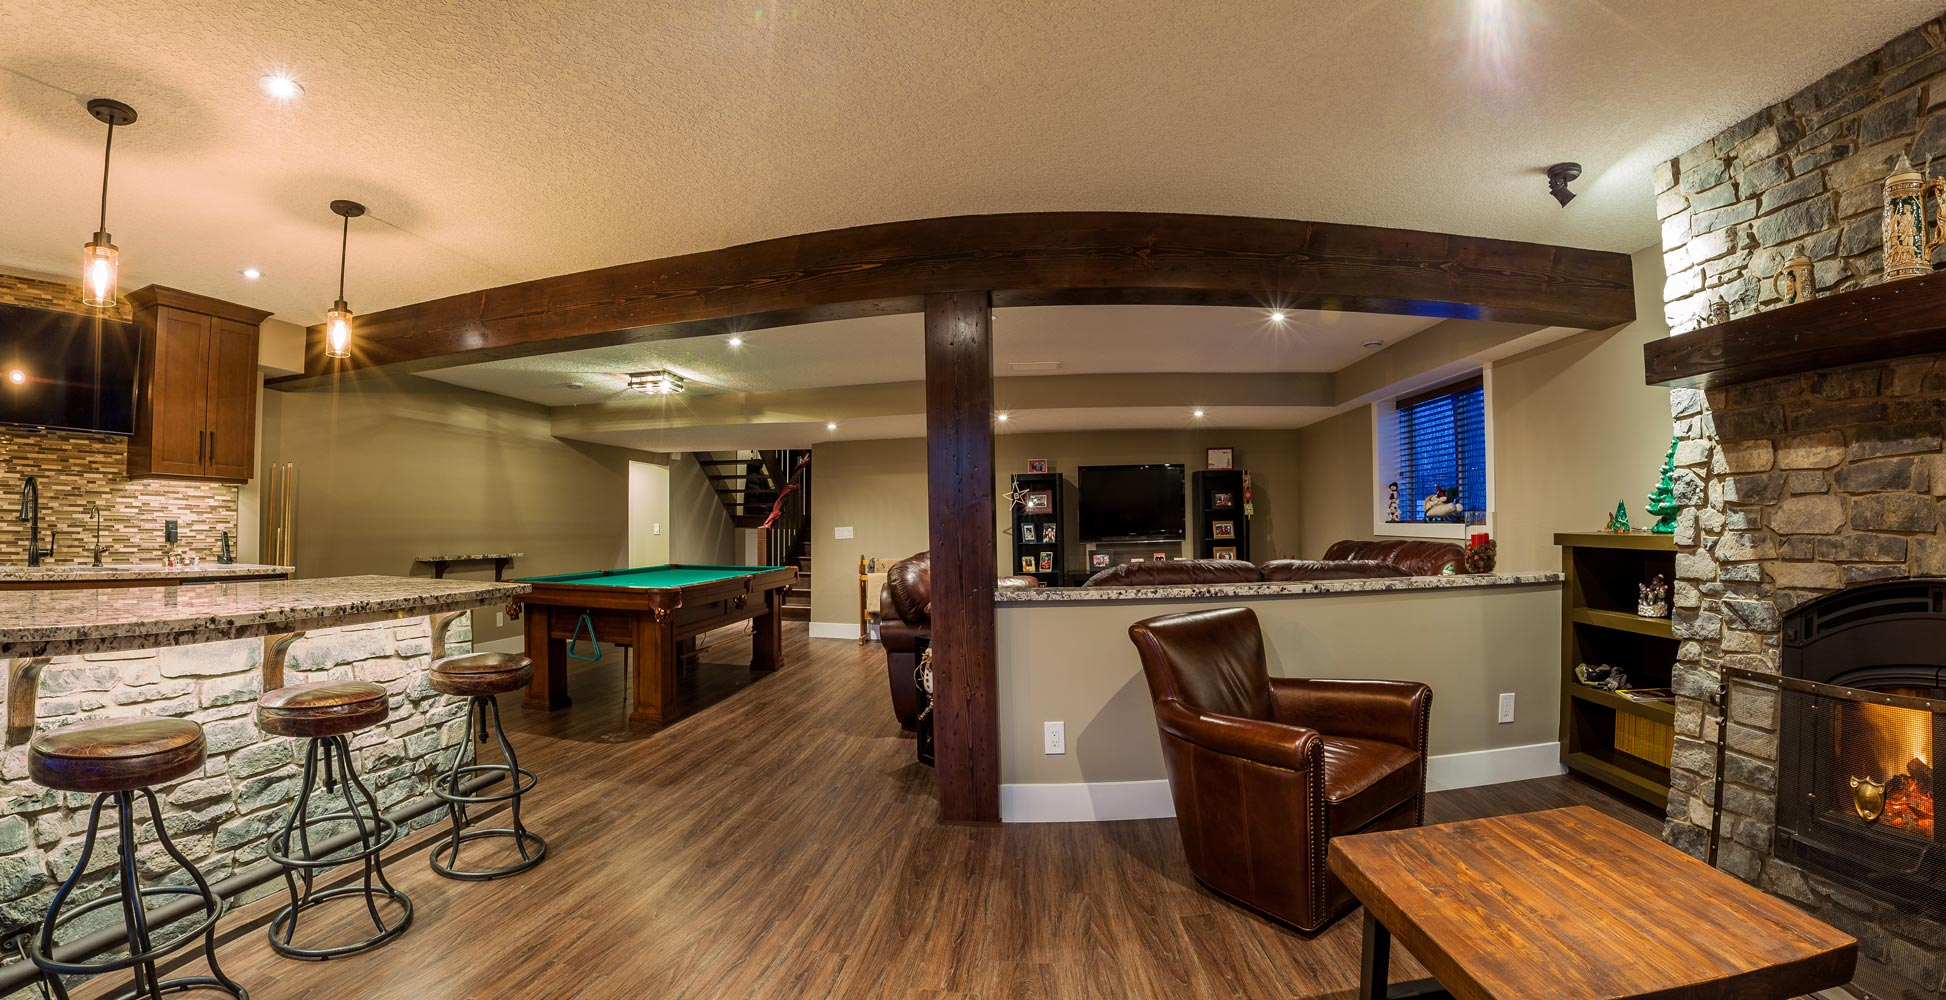 Modern living room interior with bar setting with marble stone leather cover bar stools pool table in the middle of the room with leather couches